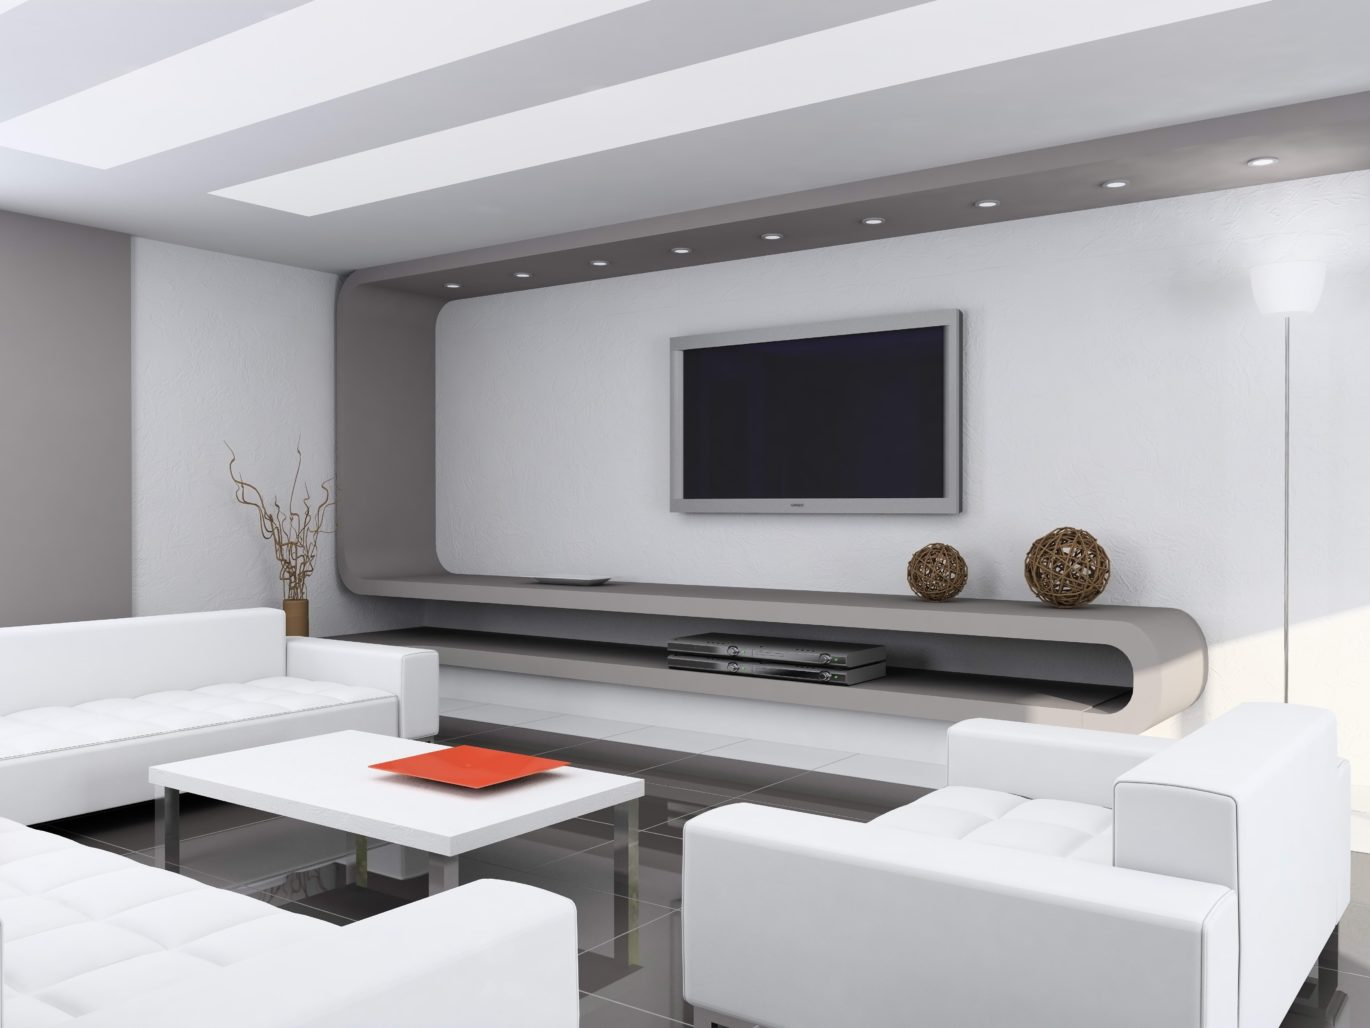 Home Theater Furniture For A Movie Theater At Home Robert Jr Graham